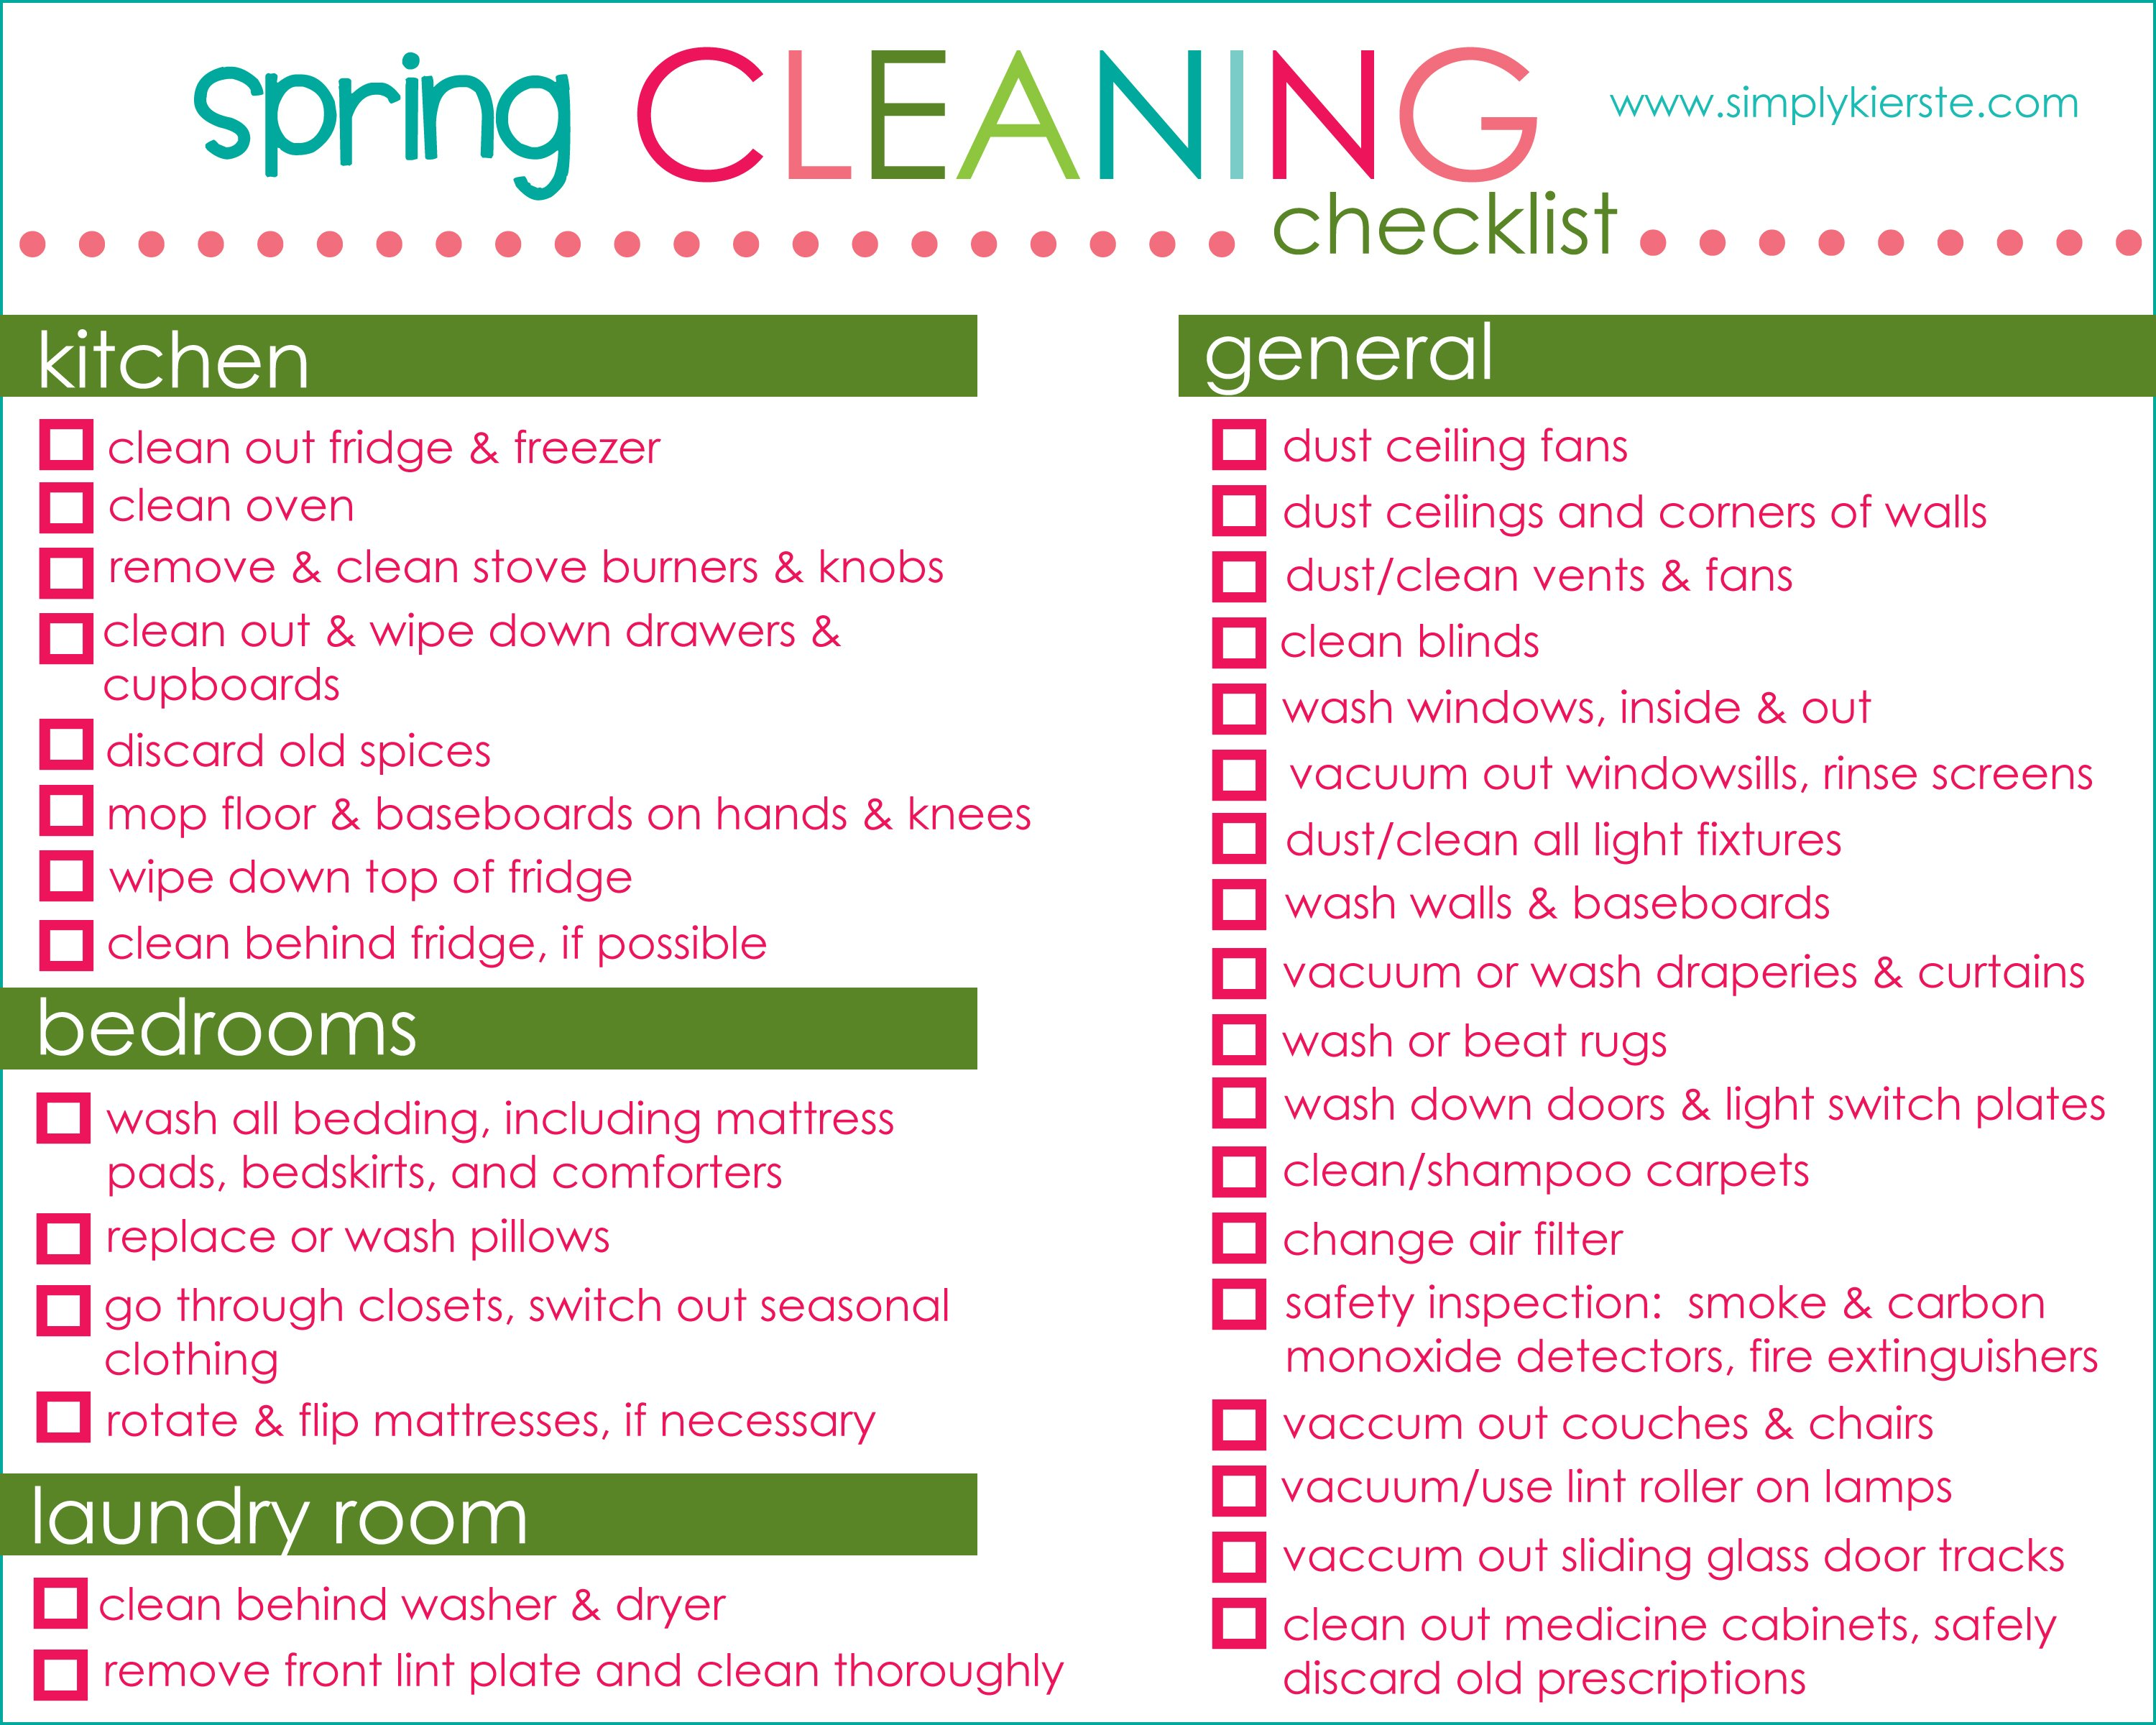 Spring Cleaning Checklist Tips Free Printable – Printable Office Supply List